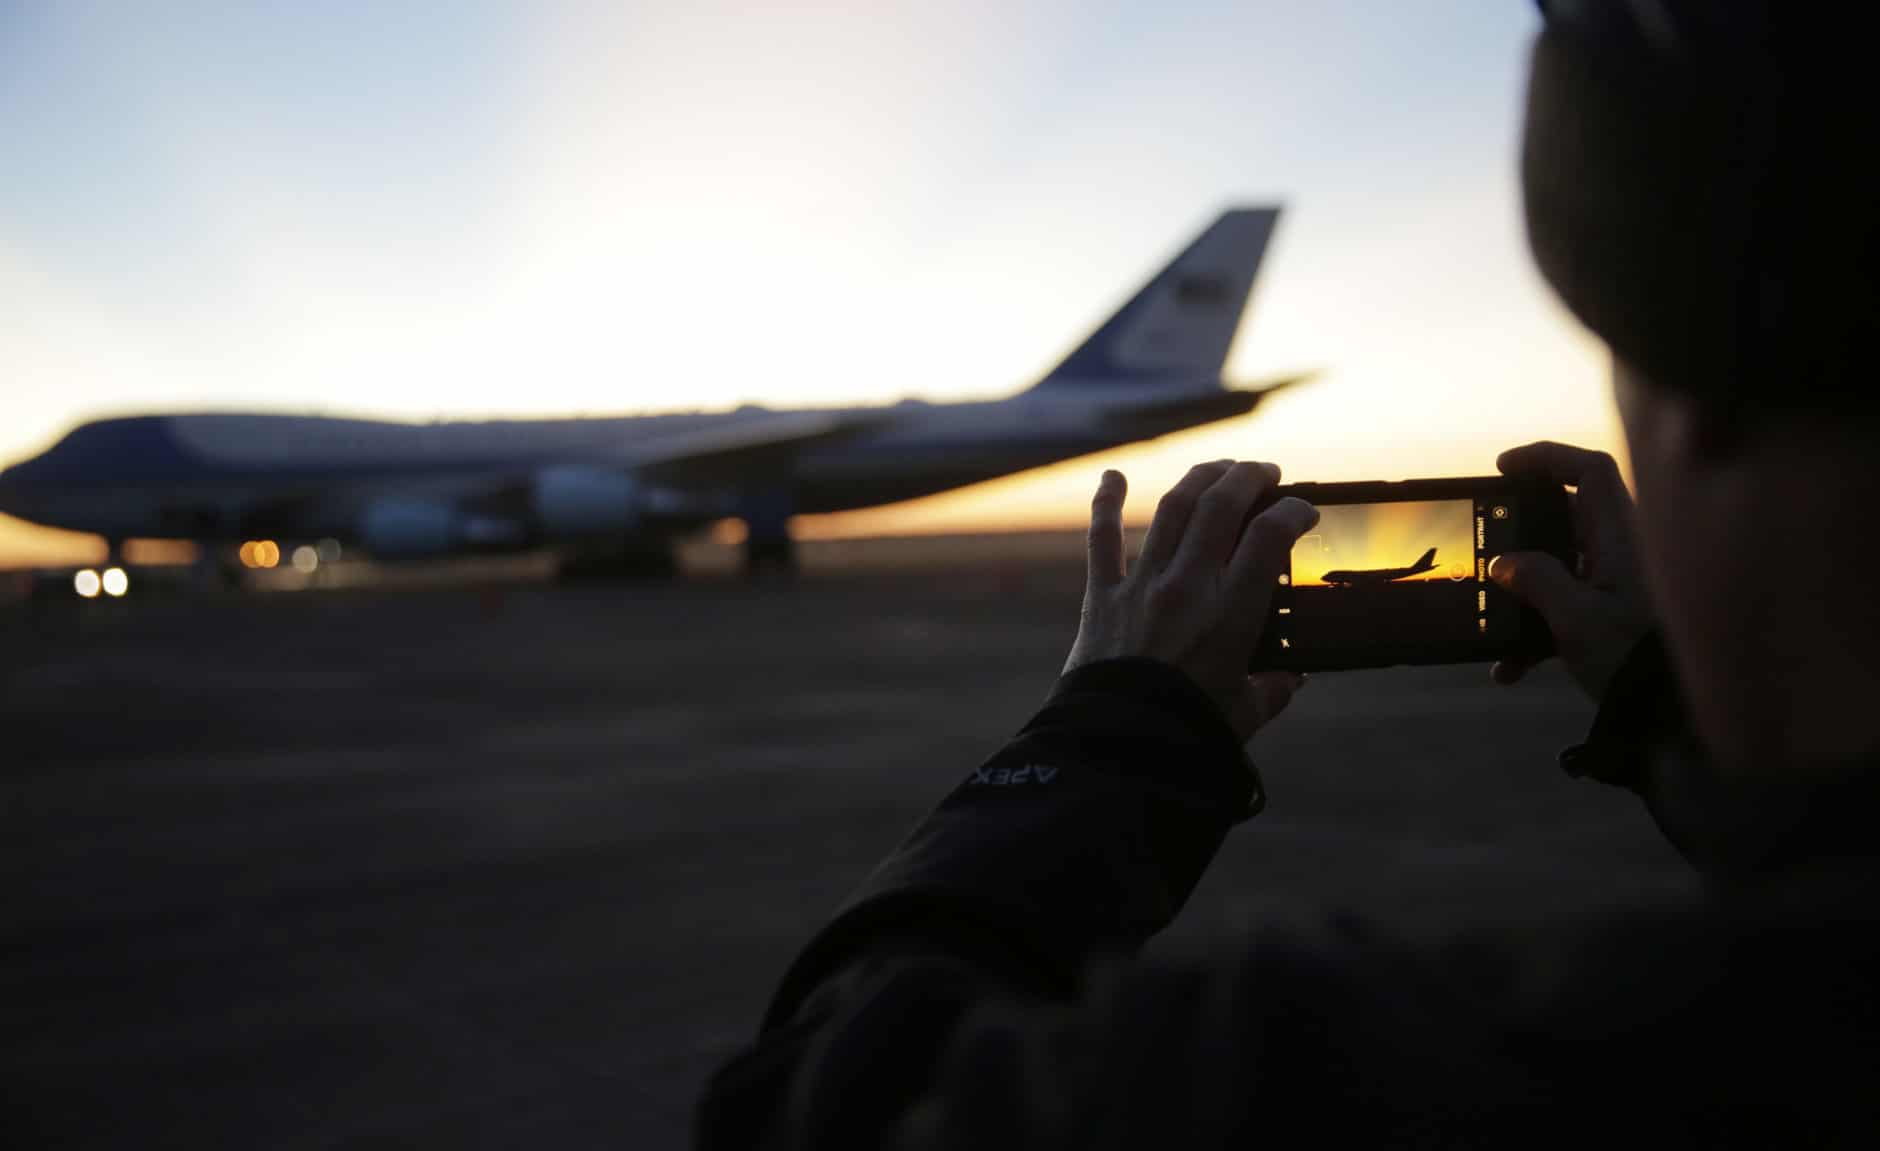 A member of the military takes a photo as the sun rises behind Special Air Mission 41, the plane that will transfer the casket of former President George H.W. Bush to Washington, Monday, Dec. 3, 2018, in Houston. Bush, died late Friday at his Houston home at age 94, is to be honored with a state funeral at National Cathedral in the nation's capital on Wednesday, followed by burial Thursday on the grounds of his presidential library at Texas A&M. (AP Photo/Eric Gay)